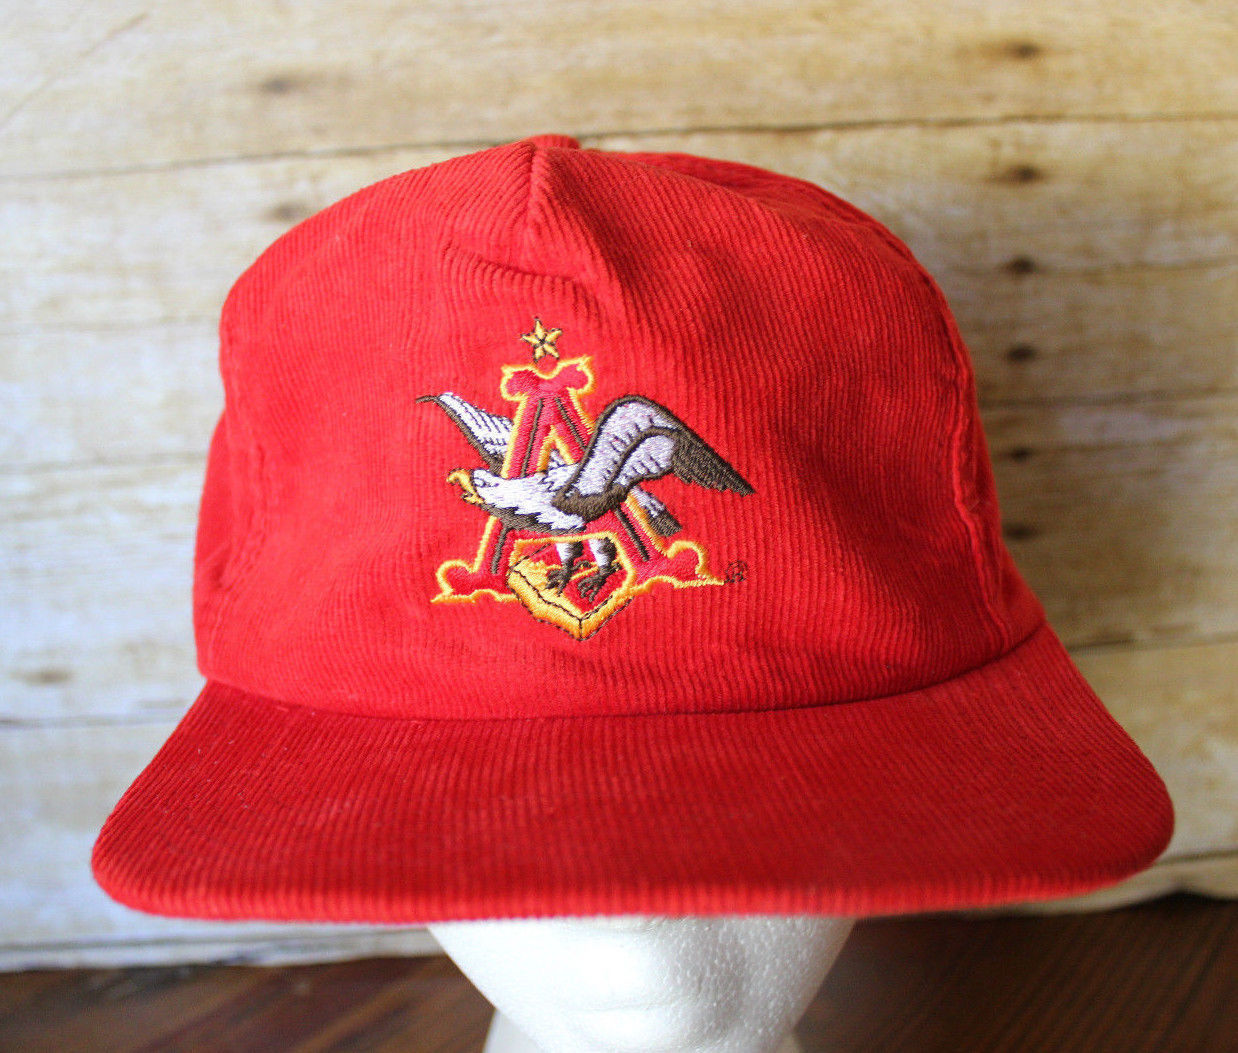 ca813319885 S l1600. S l1600. Previous. Vintage 80s Anheuser-Busch BUDWEISER Red  Corduroy Promo Cap Trucker Hat NOS · Vintage 80s ...